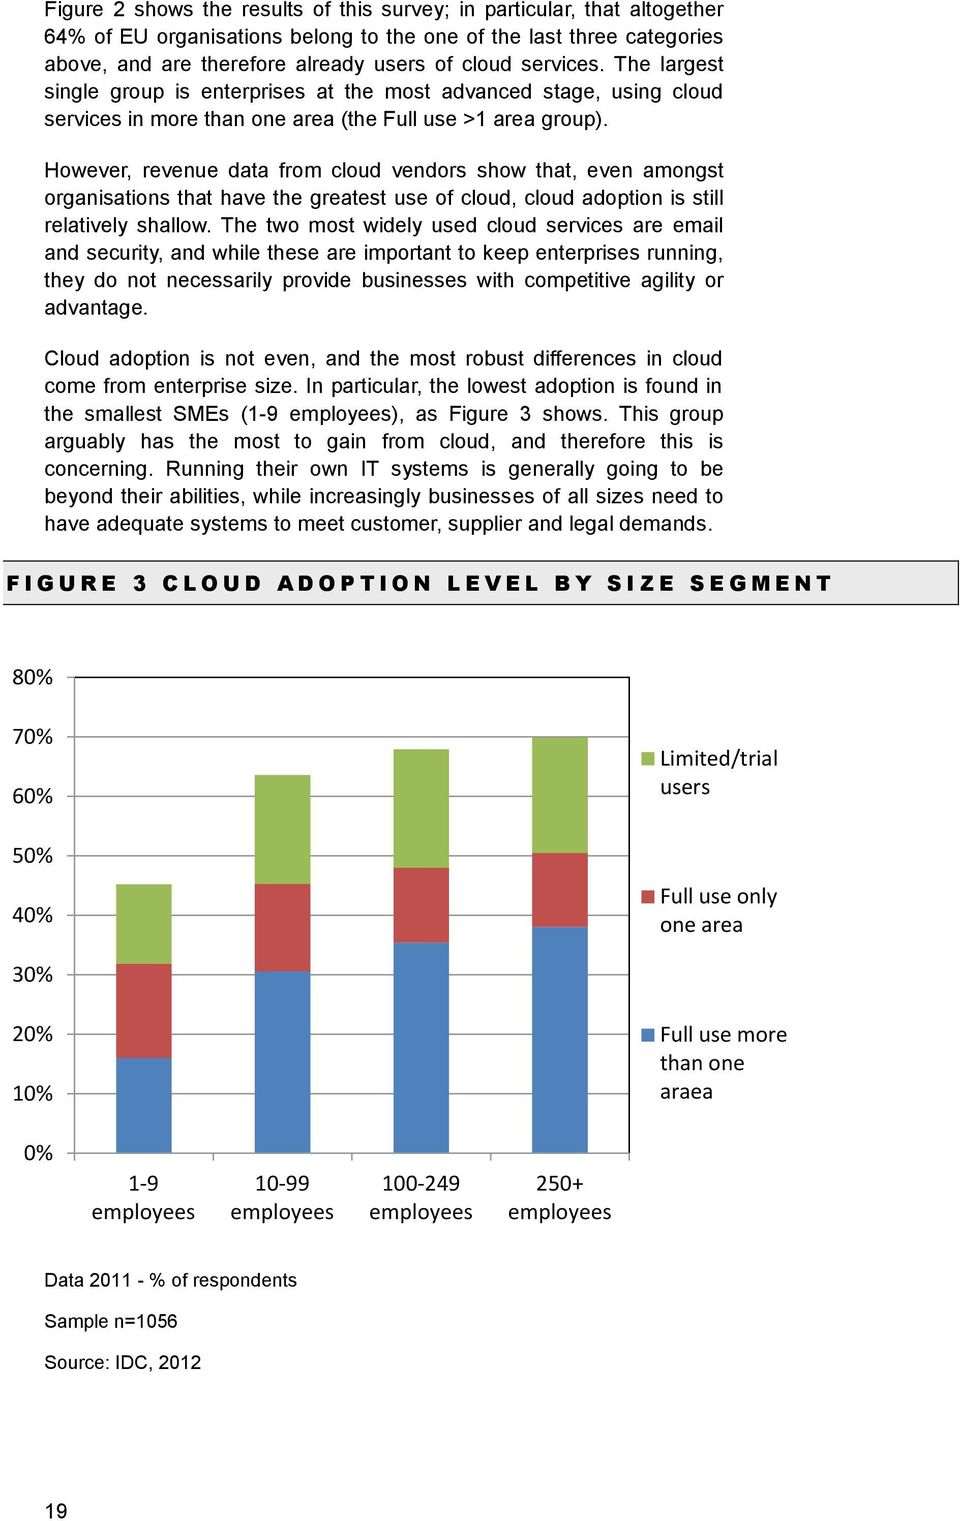 However, revenue data from cloud vendors show that, even amongst organisations that have the greatest use of cloud, cloud adoption is still relatively shallow.